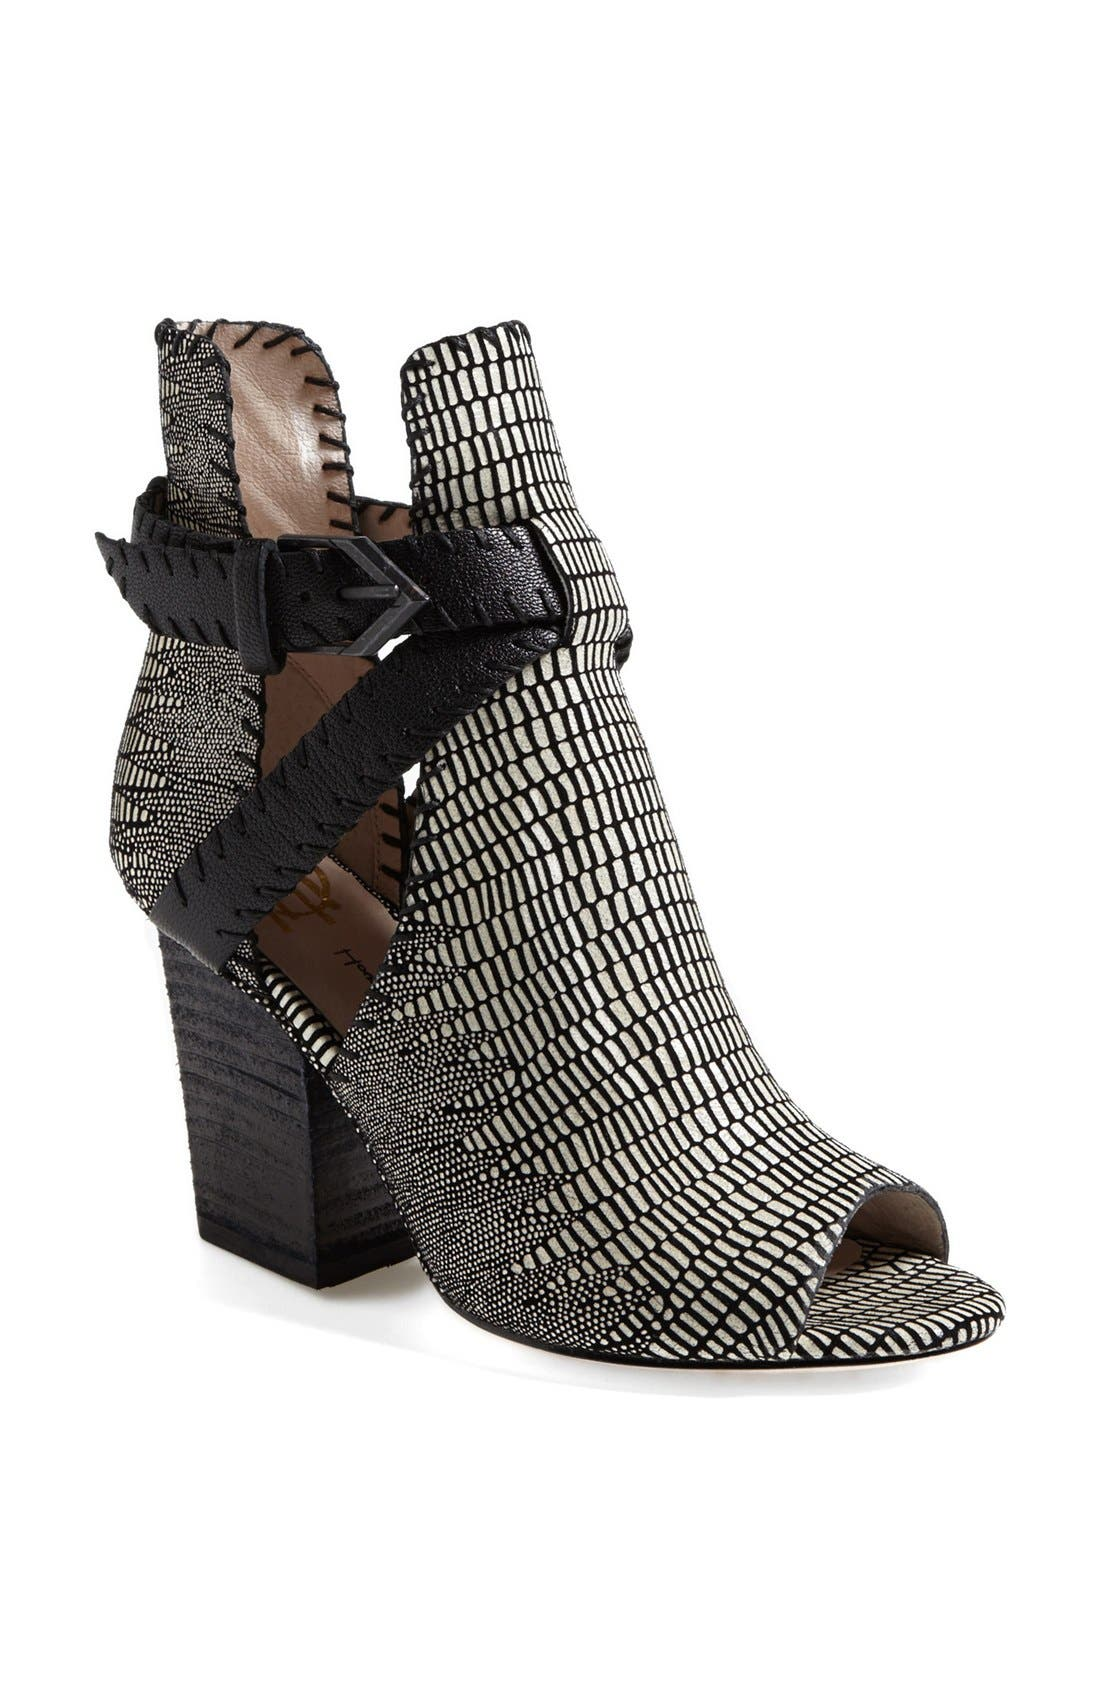 Alternate Image 1 Selected - House of Harlow 1960 Ankle Bootie